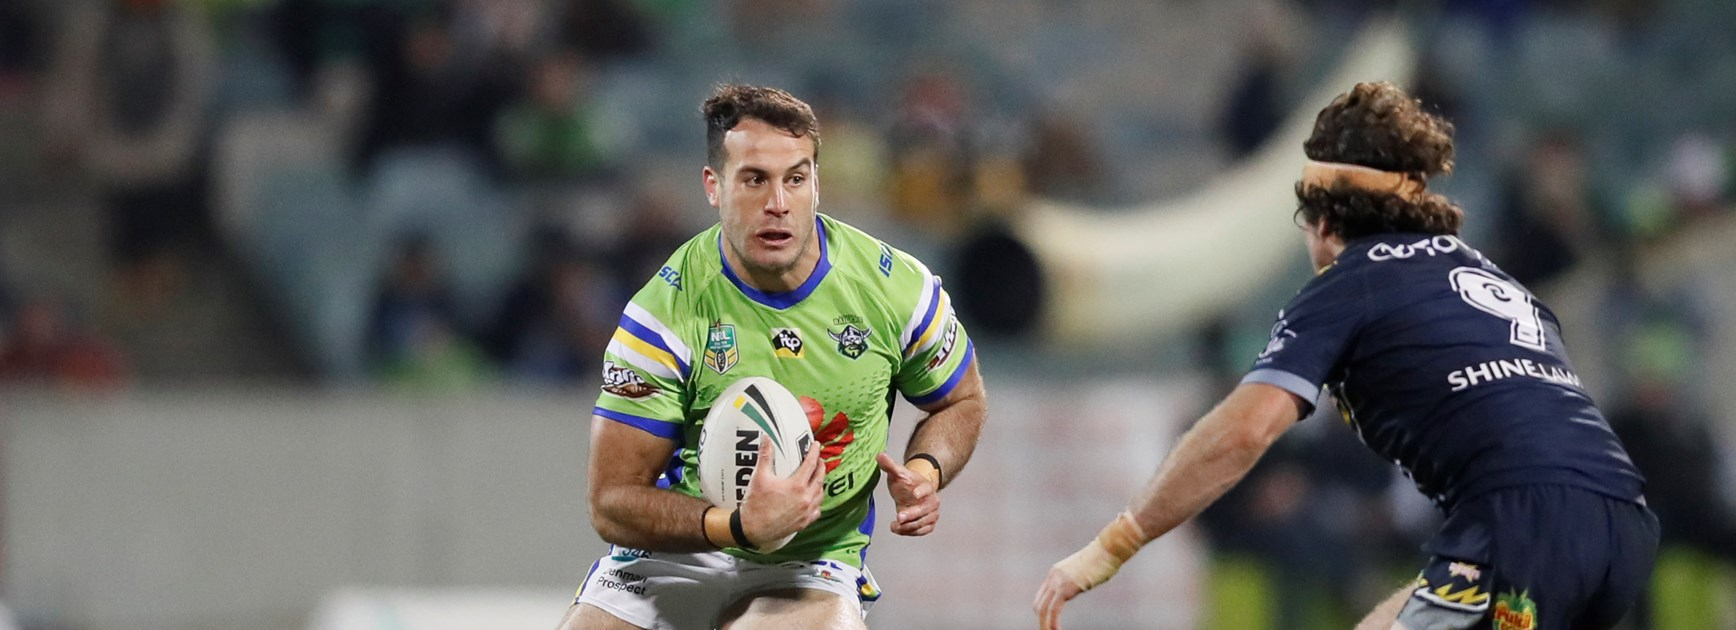 Michael Oldfield Re-Signs with the Raiders - Raiders 94aef2321